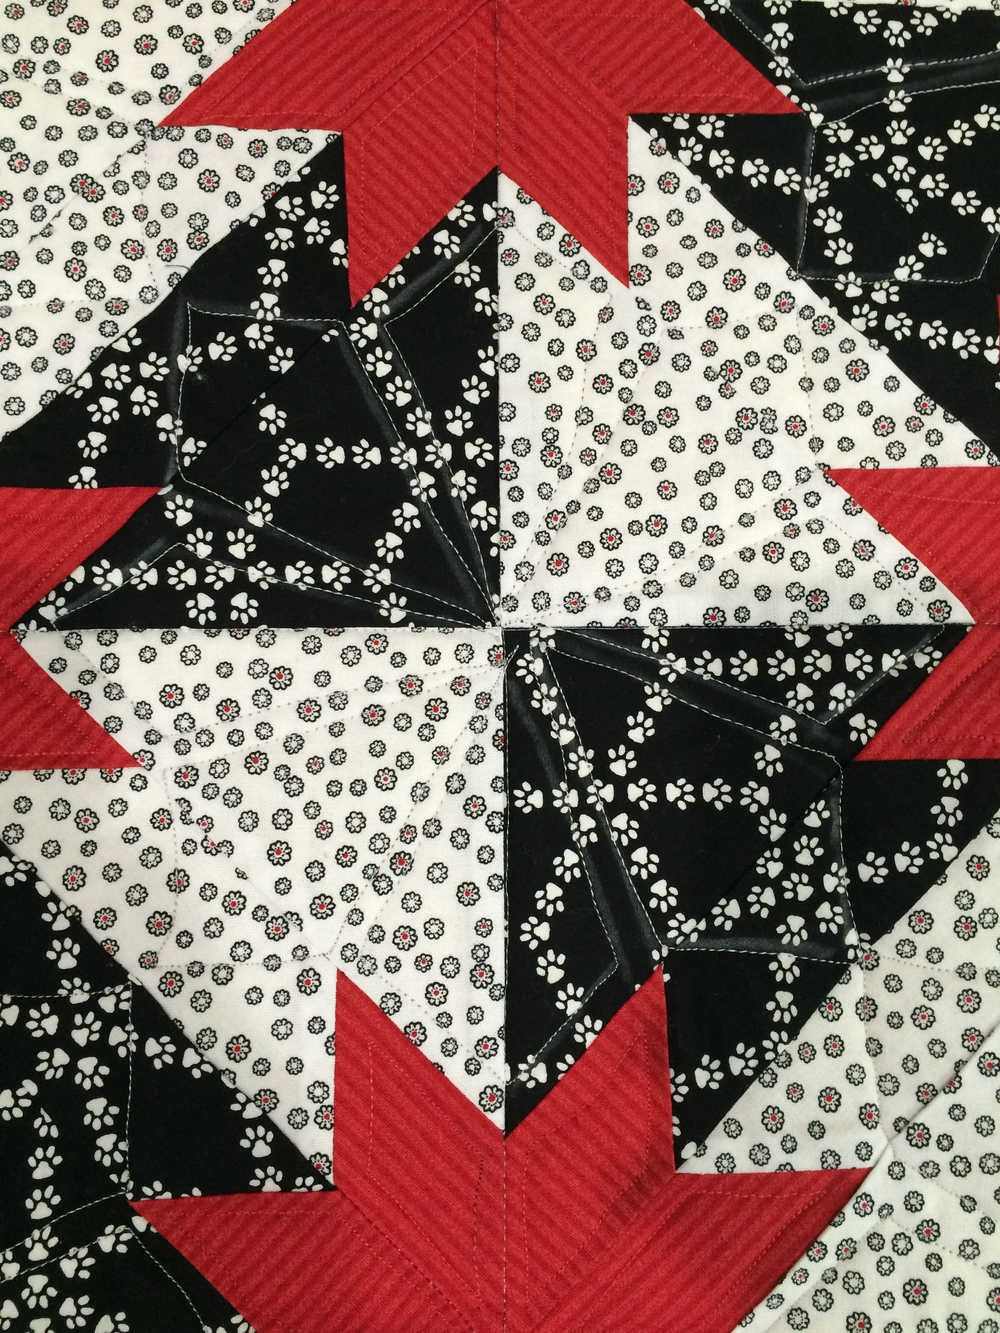 Dot-to-Dot Quilting results